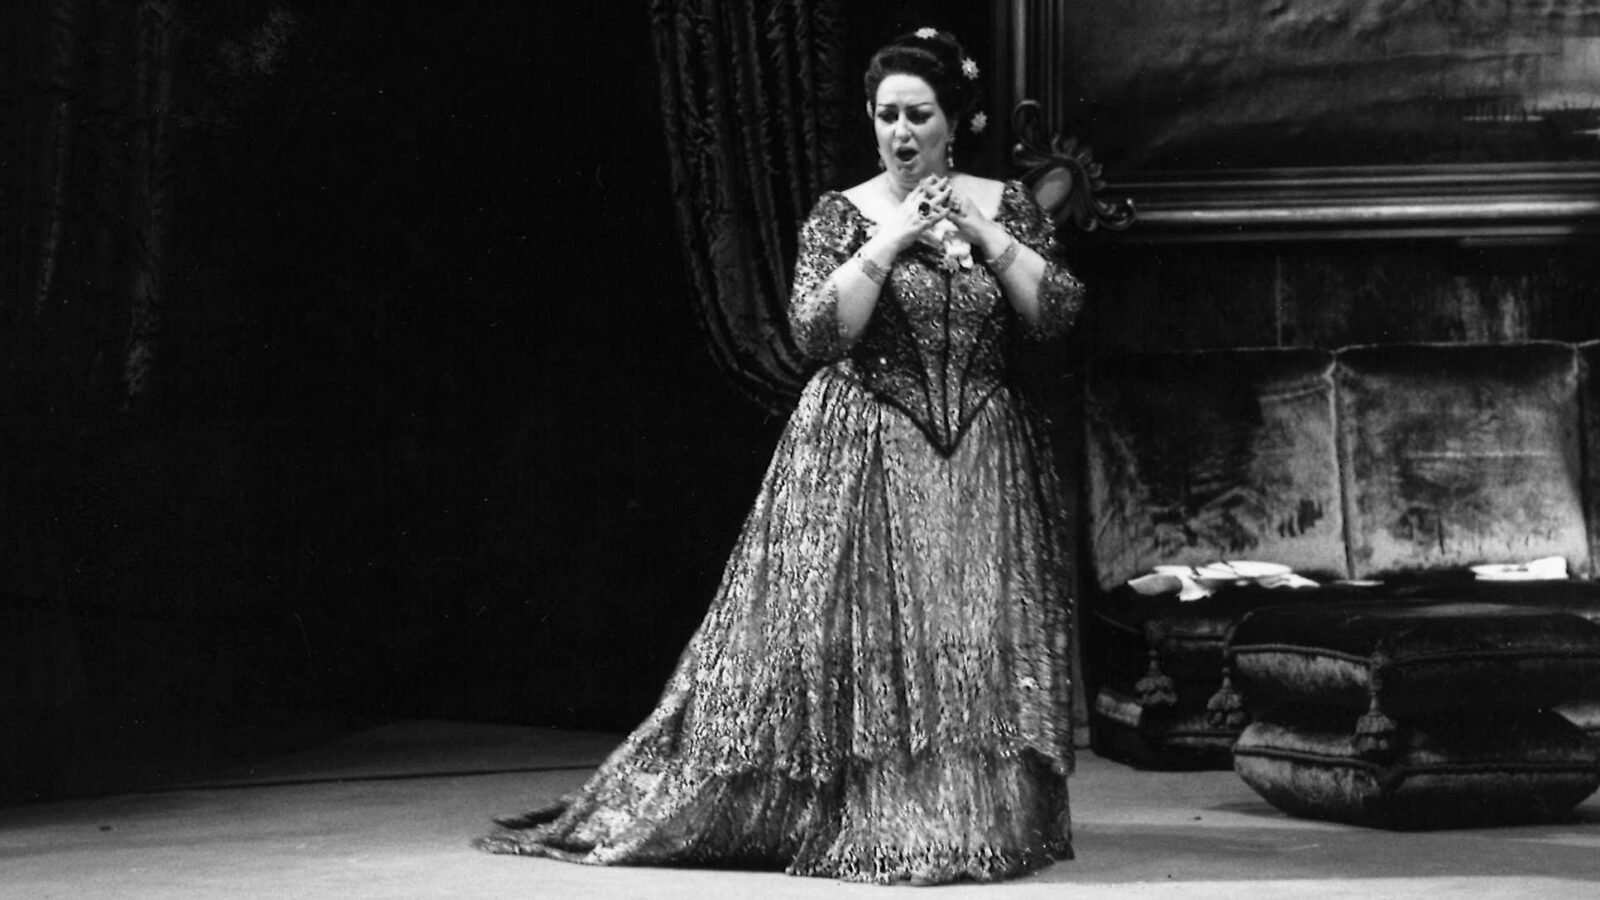 In 1970, Montserrat Caballé performed in Lyric Opera of Chicago's <i>La traviata</i>, her Lyric debut. (Photo: David H. Fishman/Lyric Opera of Chicago)